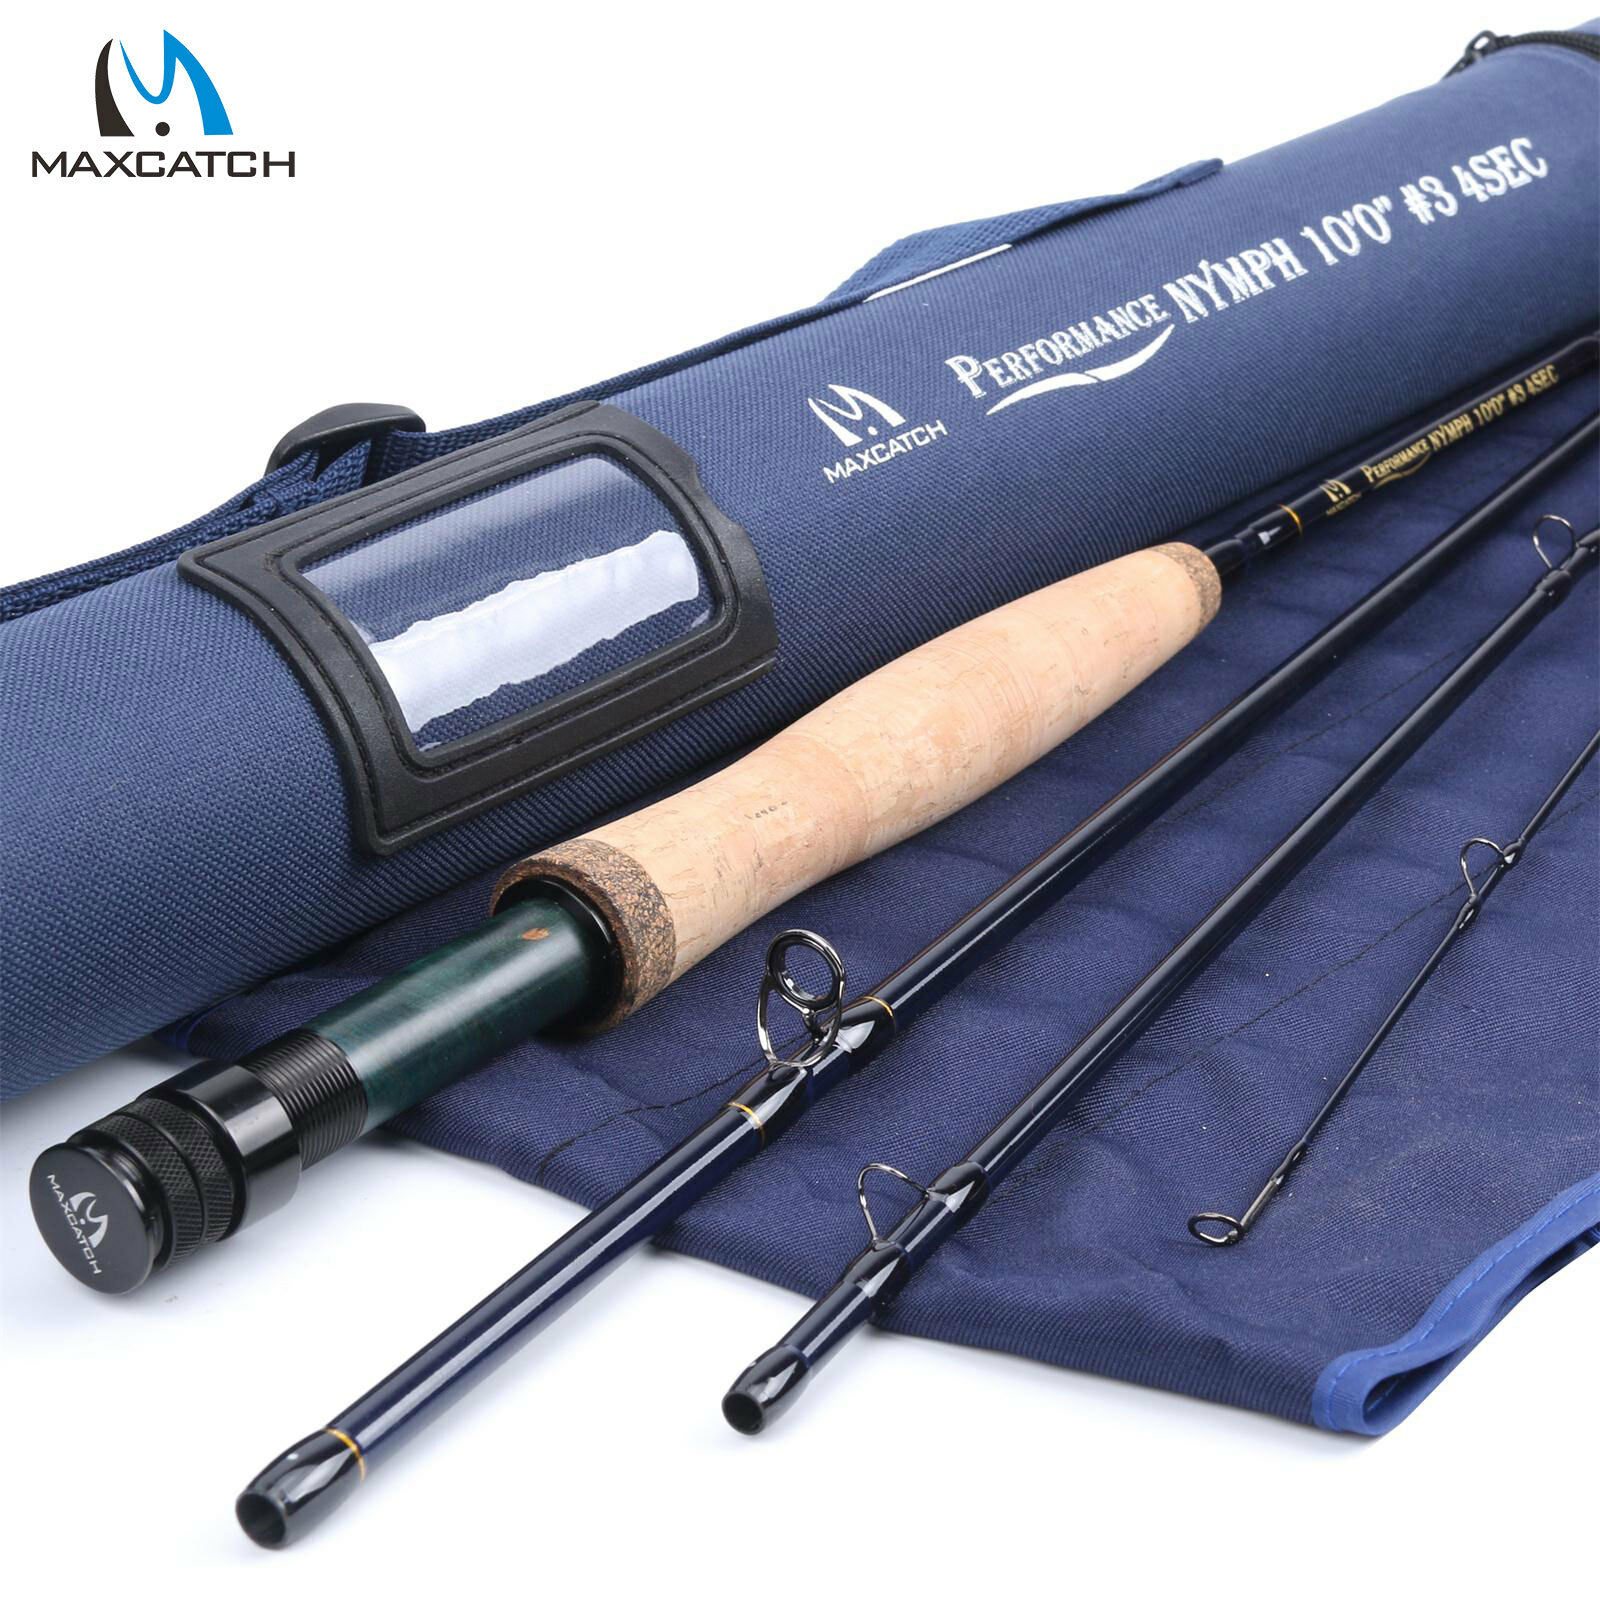 Maxcatch Nymph Fly Rod 2 3 4WT 10ft 4Sec Graphite IM10 Fast Action Fishing Rod